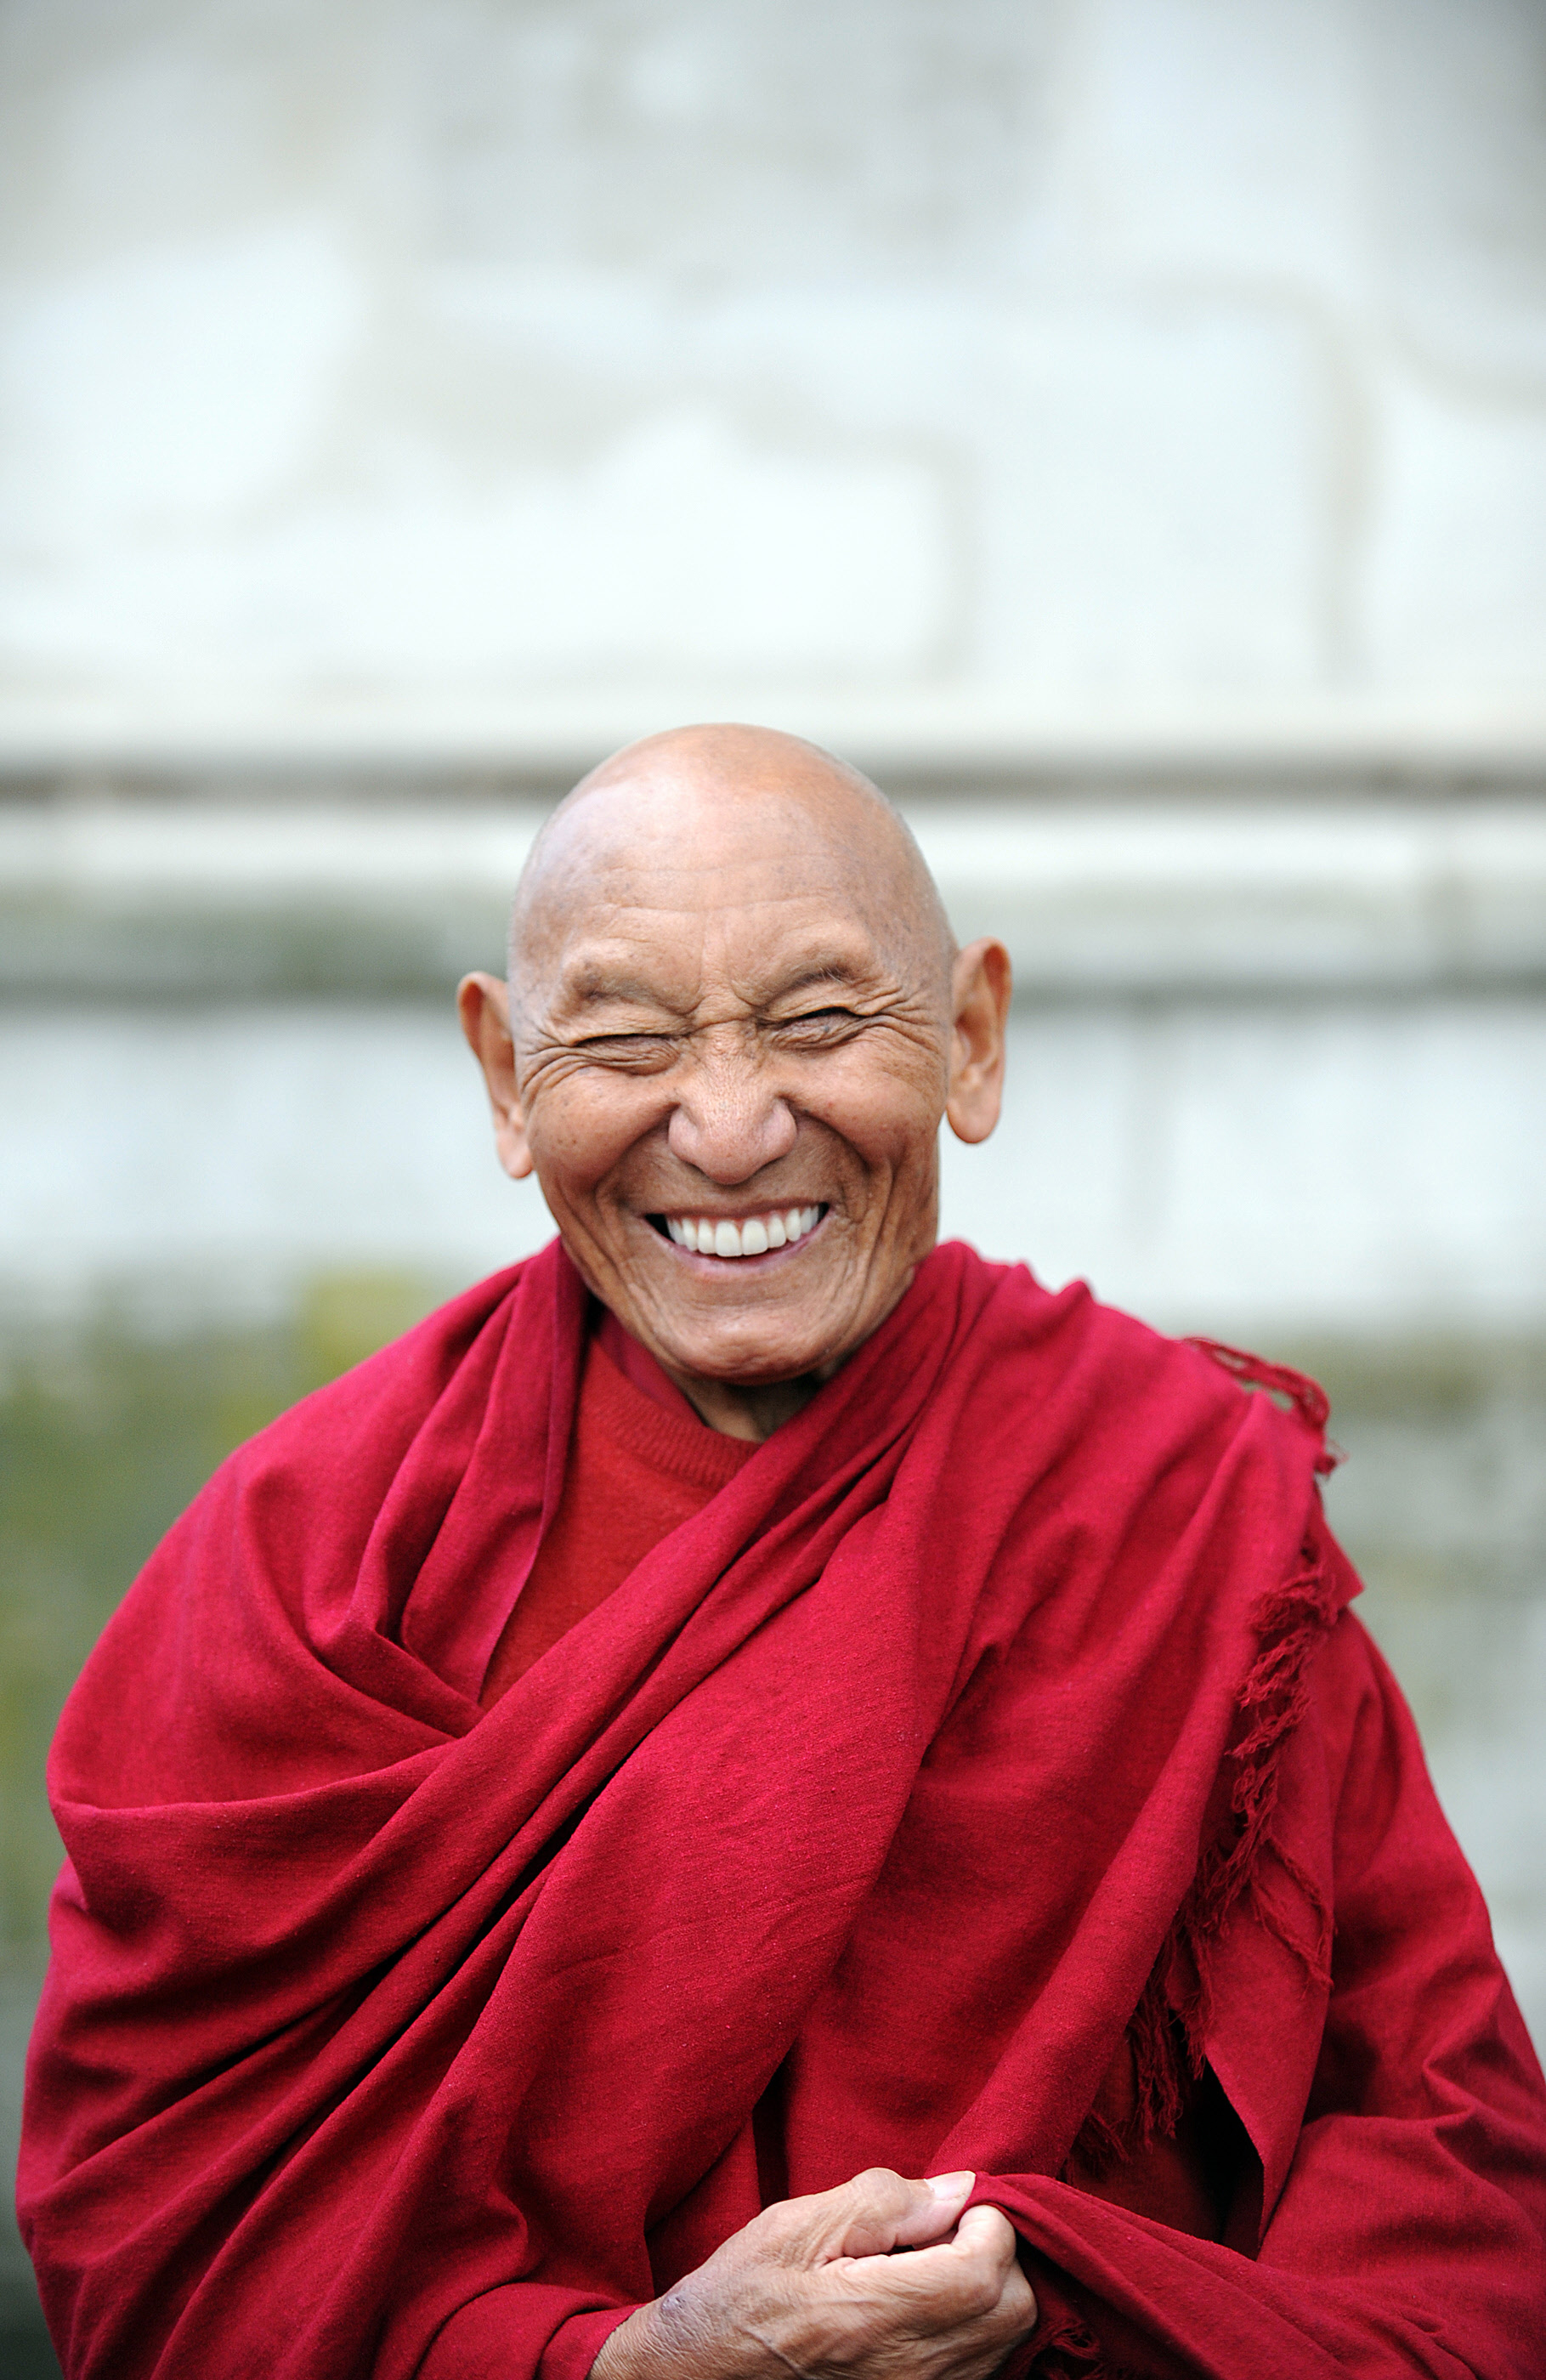 FILE - Tibetan Buddhist monk Palden Gyatso attends a wreath-laying ceremony at the Memorial to Innocent Victims, outside Westminster Abbey in London, March 10, 2009.